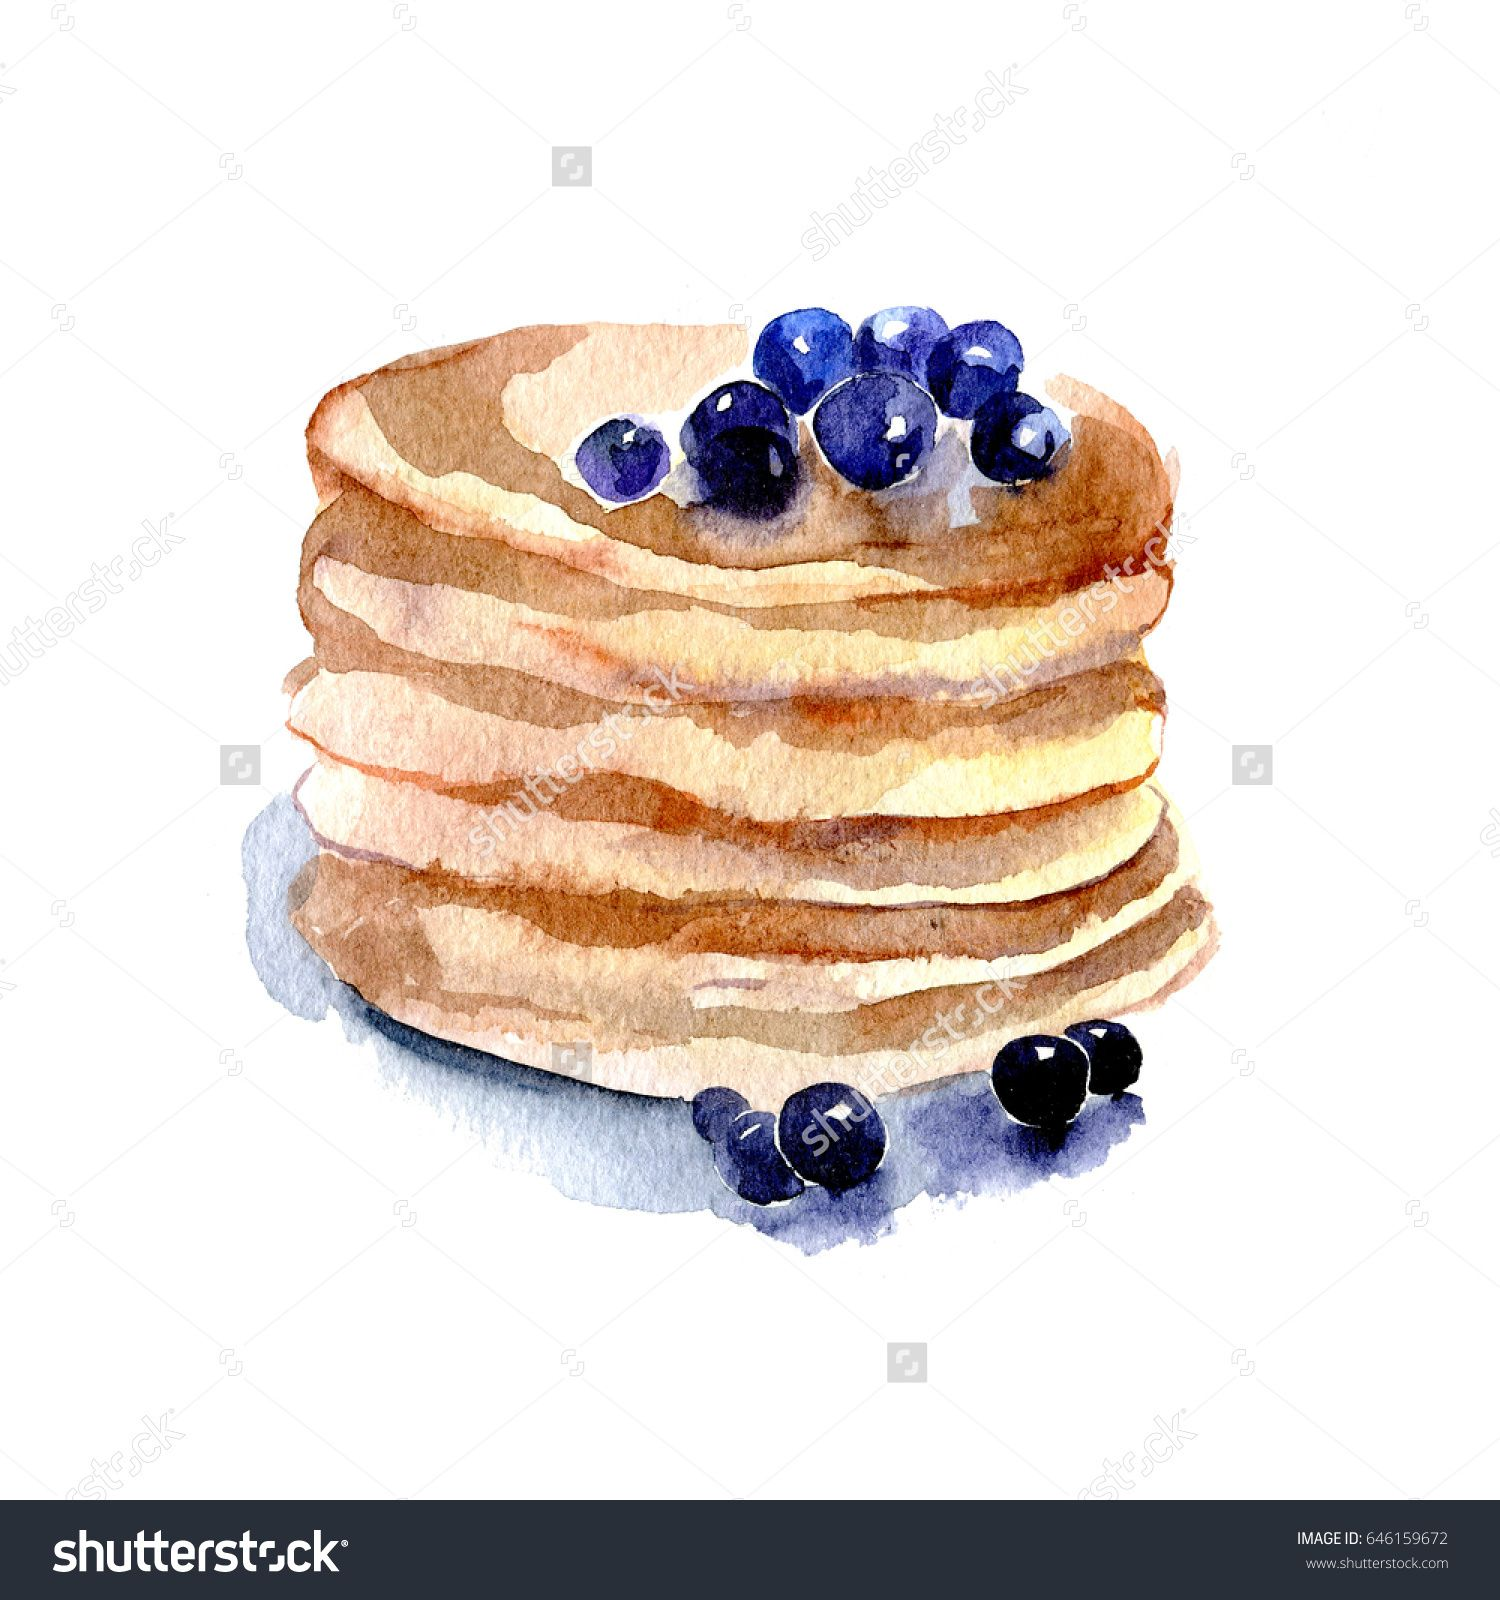 Delicious Pancake With Blueberries Hand Drawn Watercolor